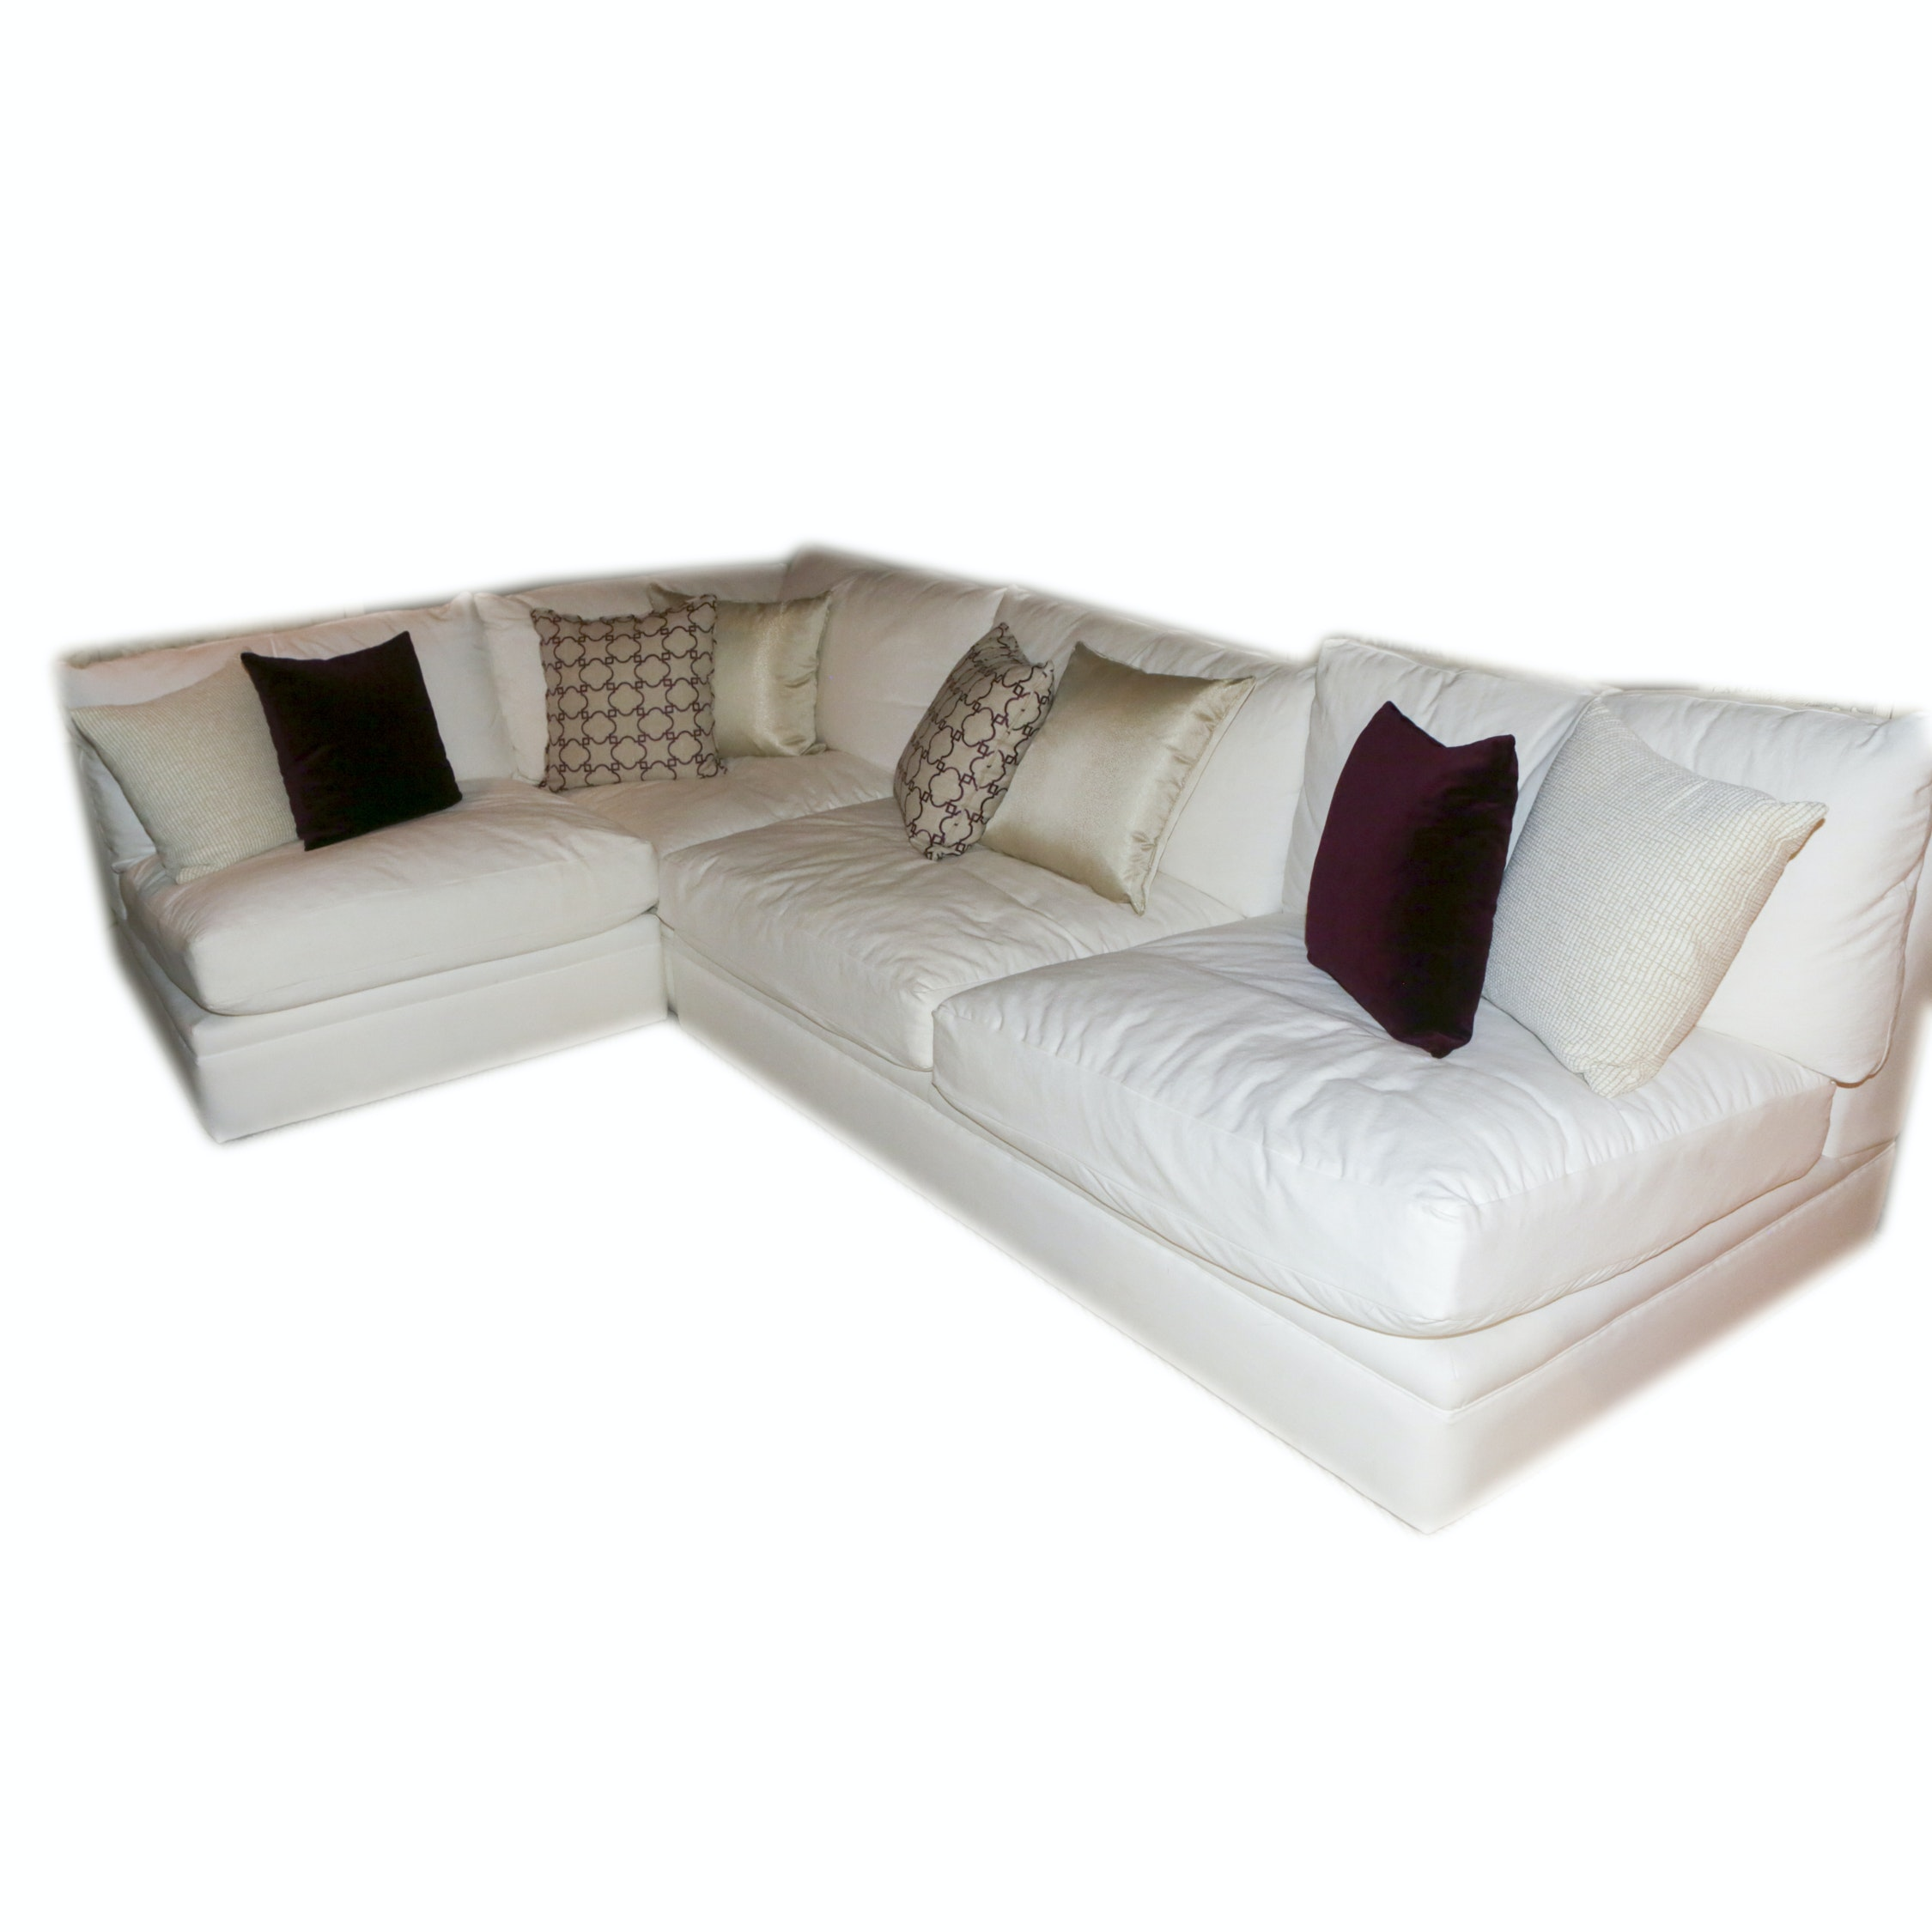 Contemporary White Upholstered Sectional Sofa by Distinctions